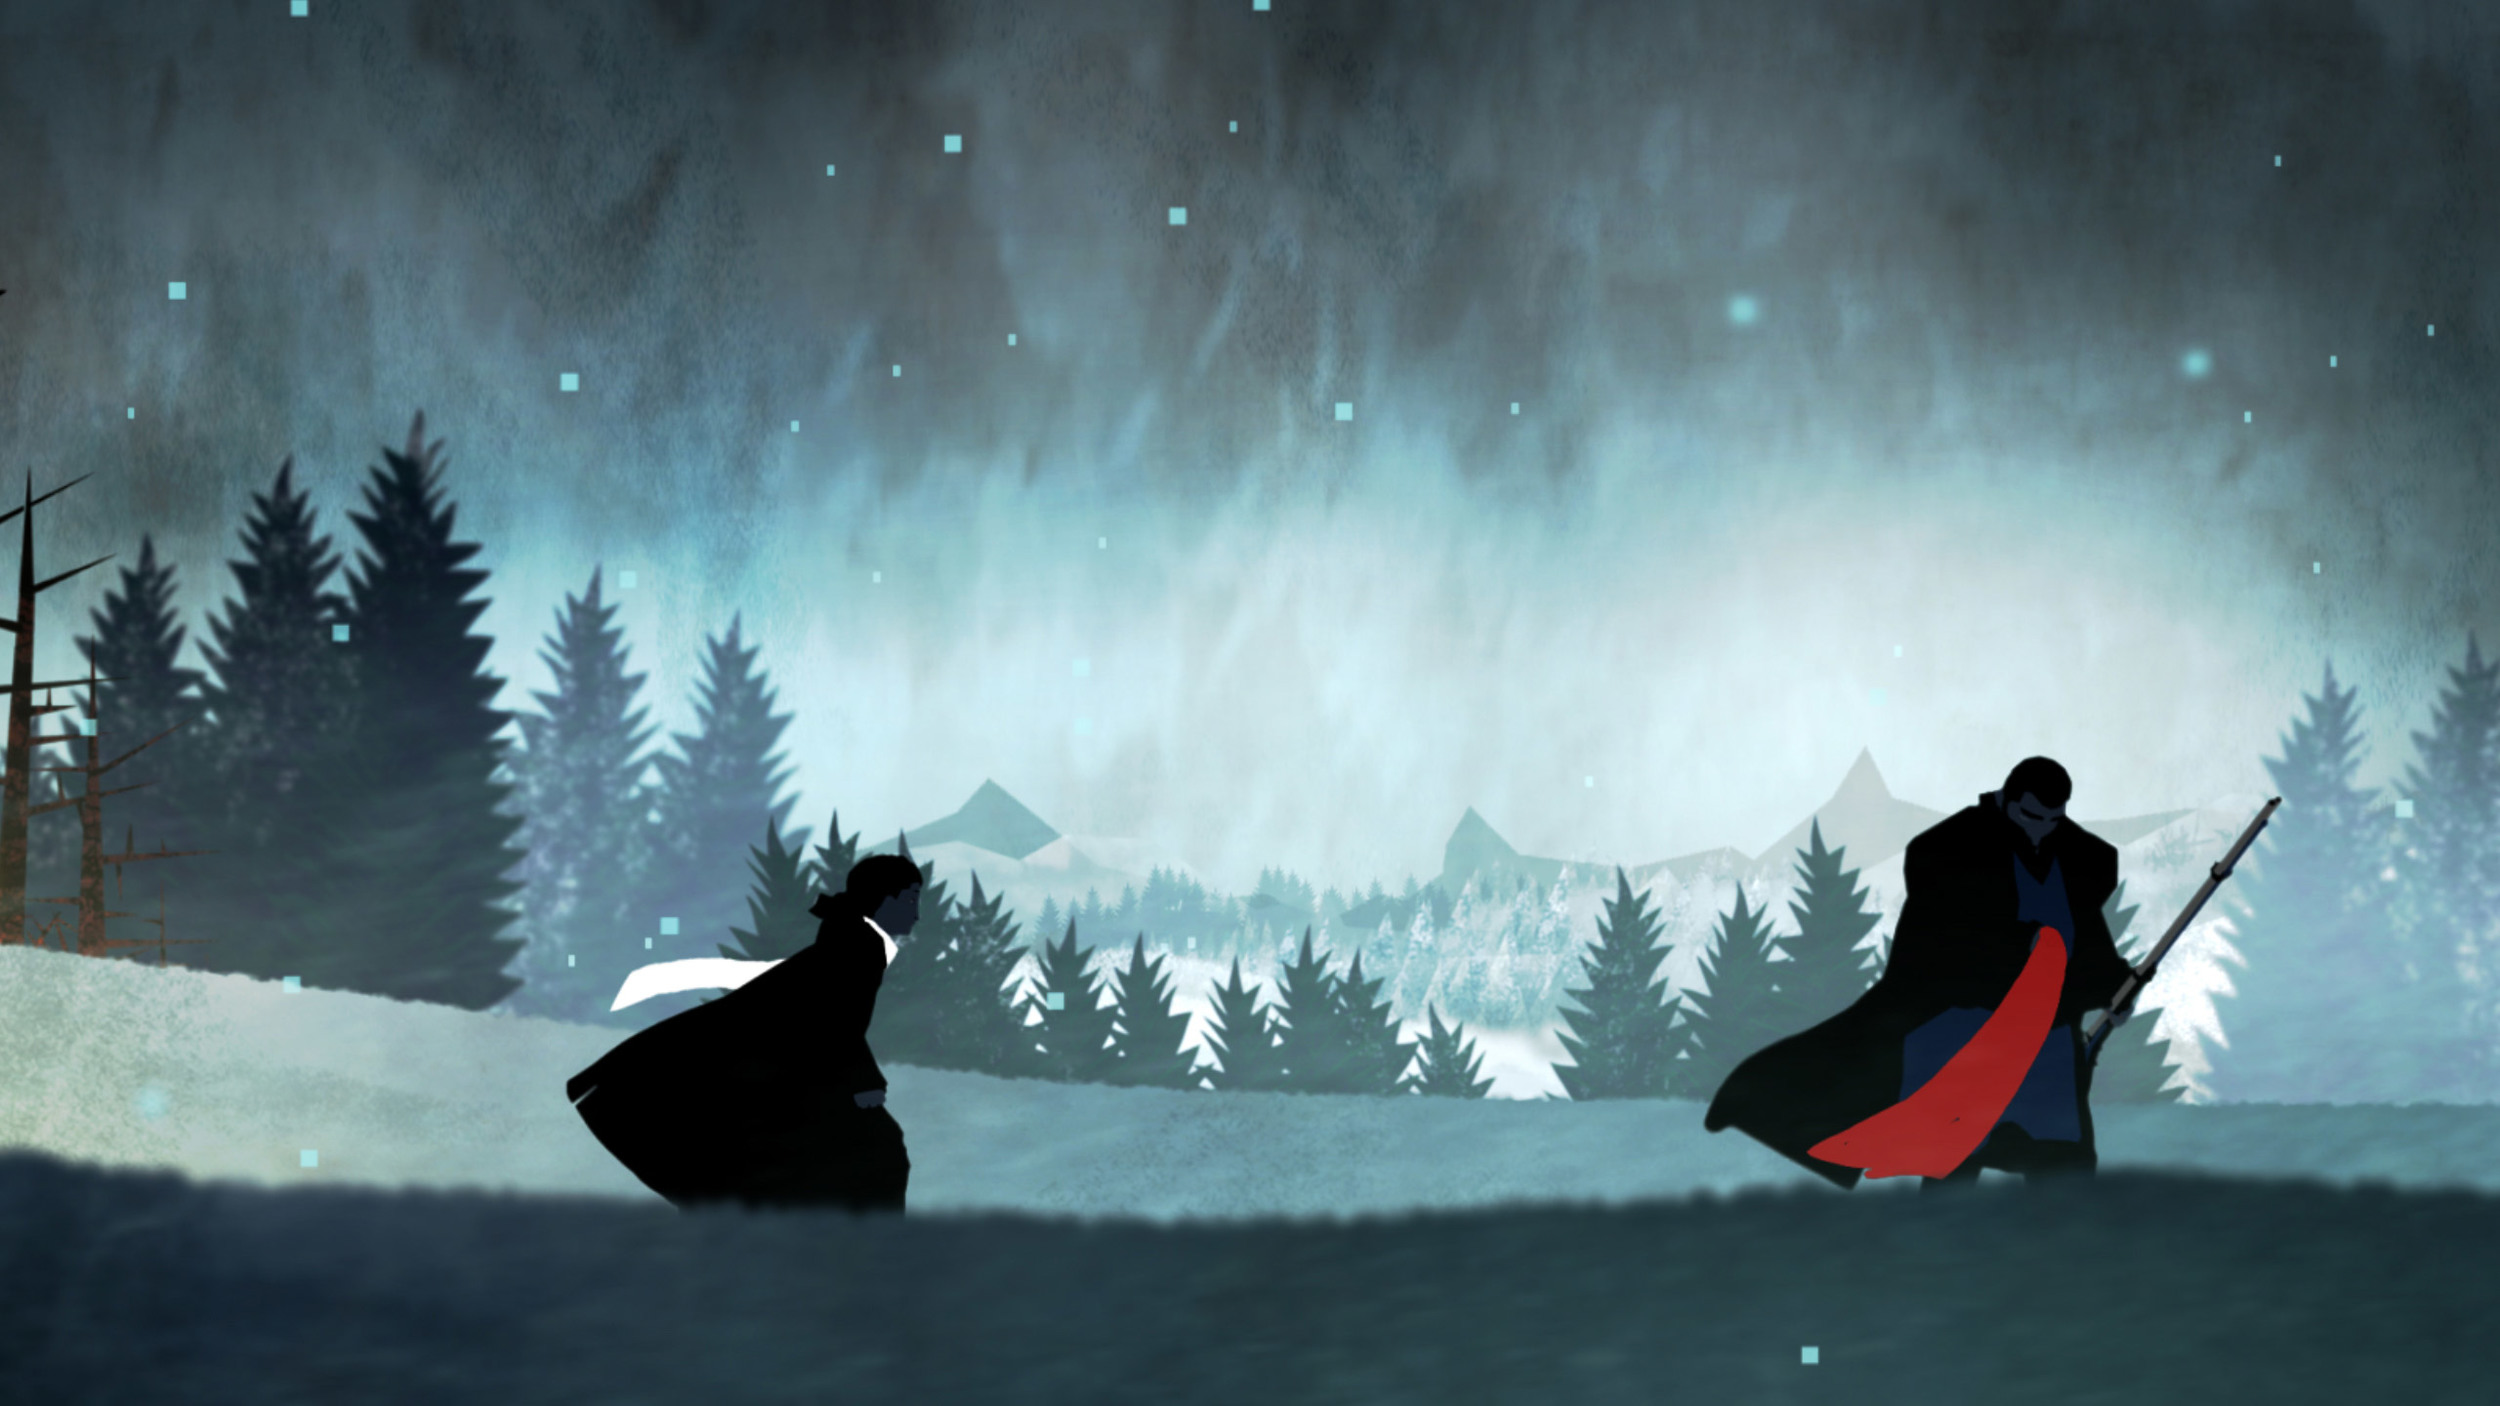 superb-animated-short-film-about-a-boy-and-a-dying-wolf-4.jpg